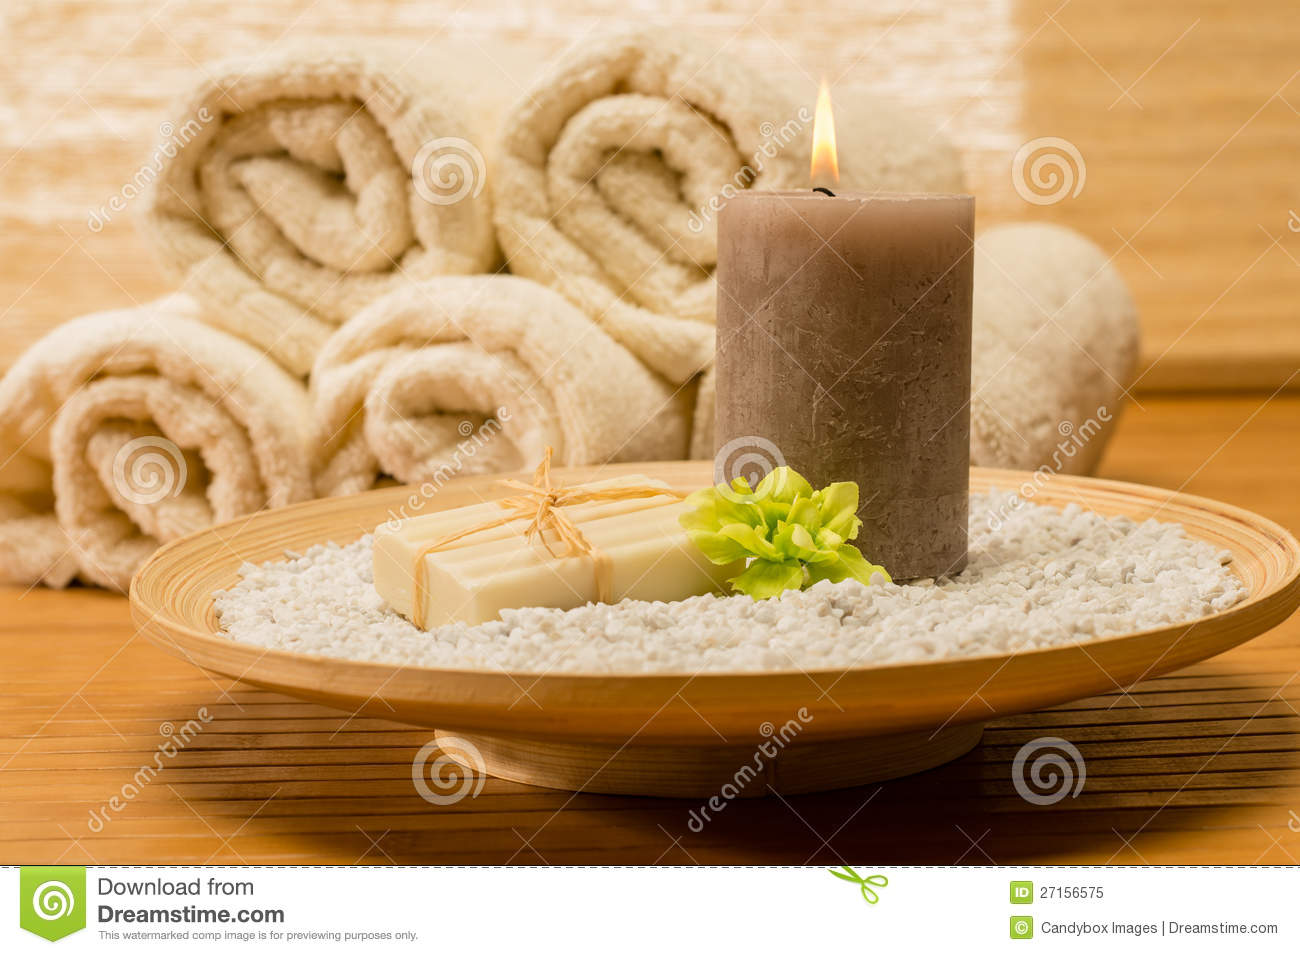 Spa decor wooden tray with candle soap royalty free stock photo image 27156575 - Decoratie spa ...